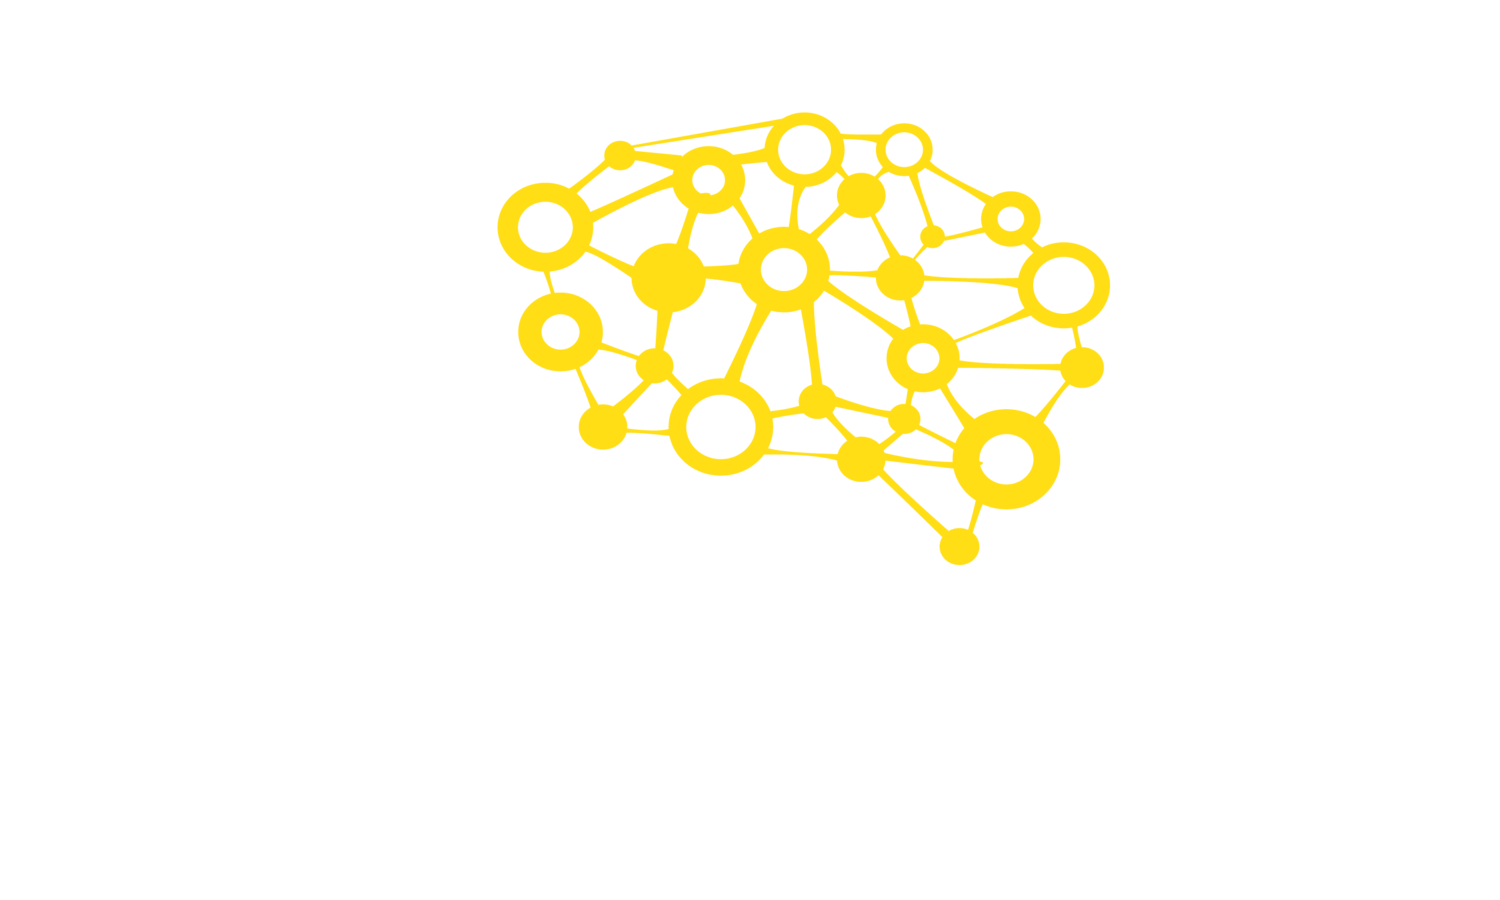 the next institute